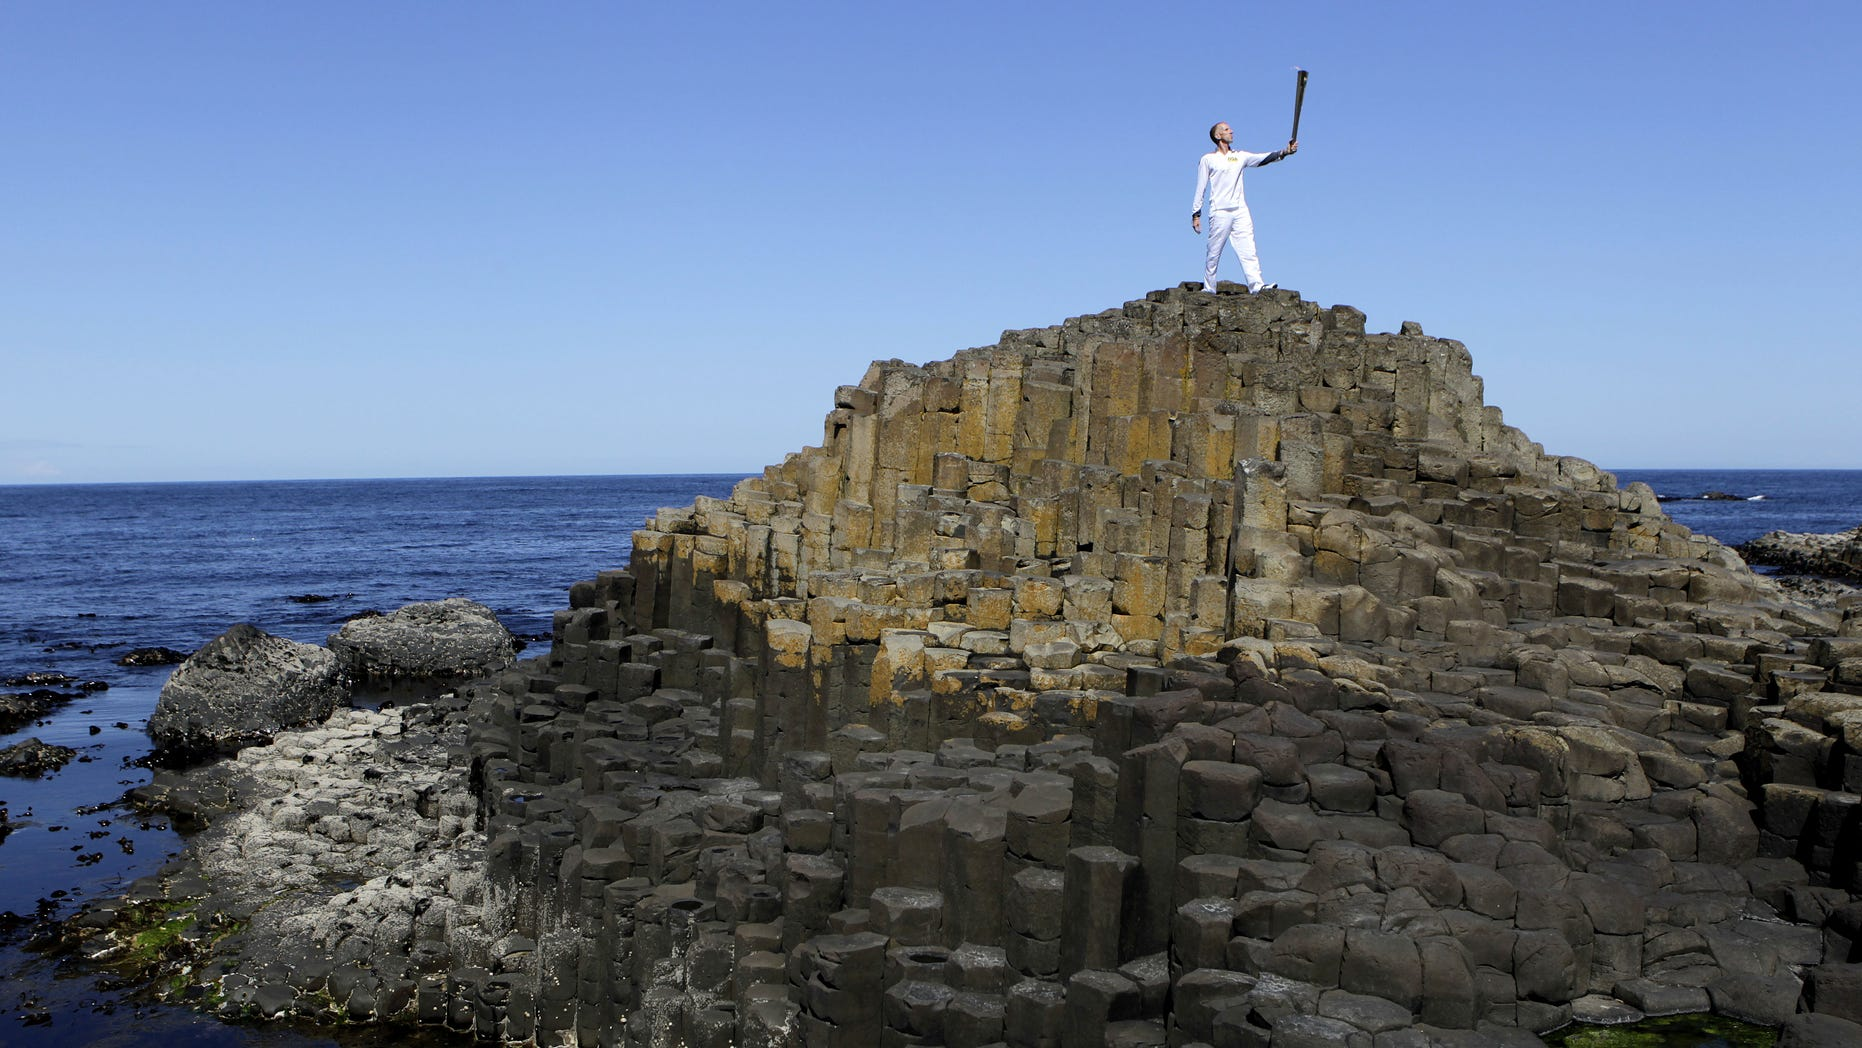 Peter Jack holds the Olympic torch aloft at the Giant's Causeway in county Antrim, Northern Ireland, Monday, June 4, 2012.   The Olympic Torch is continuing its relay journey around the country, and is scheduled to arrive at the opening ceremony of the London 2012 Olympic Games. (AP Photo/Peter Morrison)